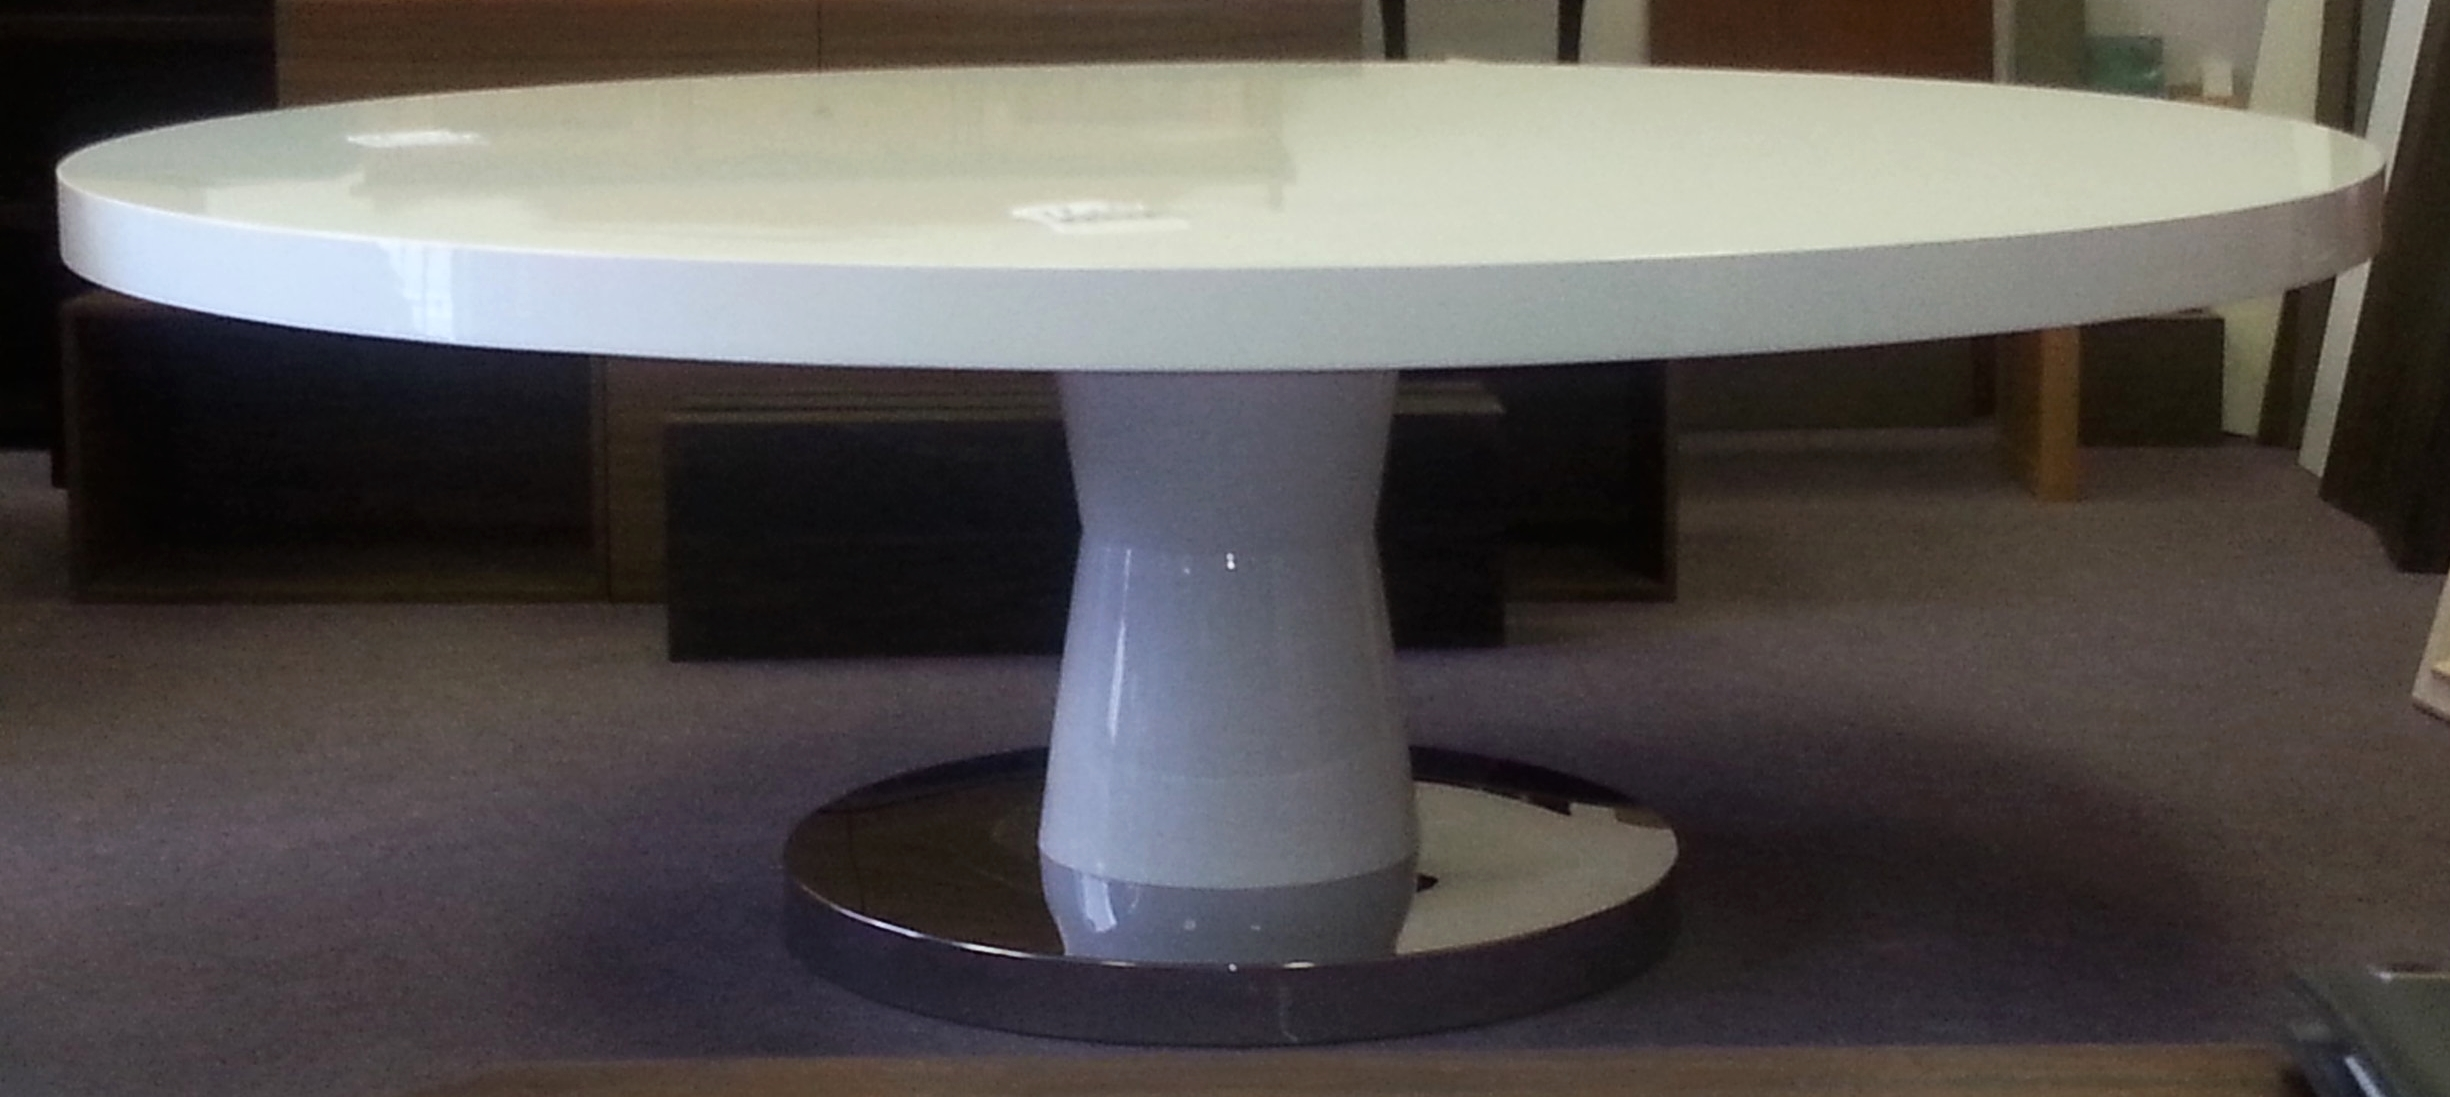 high-gloss-white-round-sculptural-dining-table.jpg